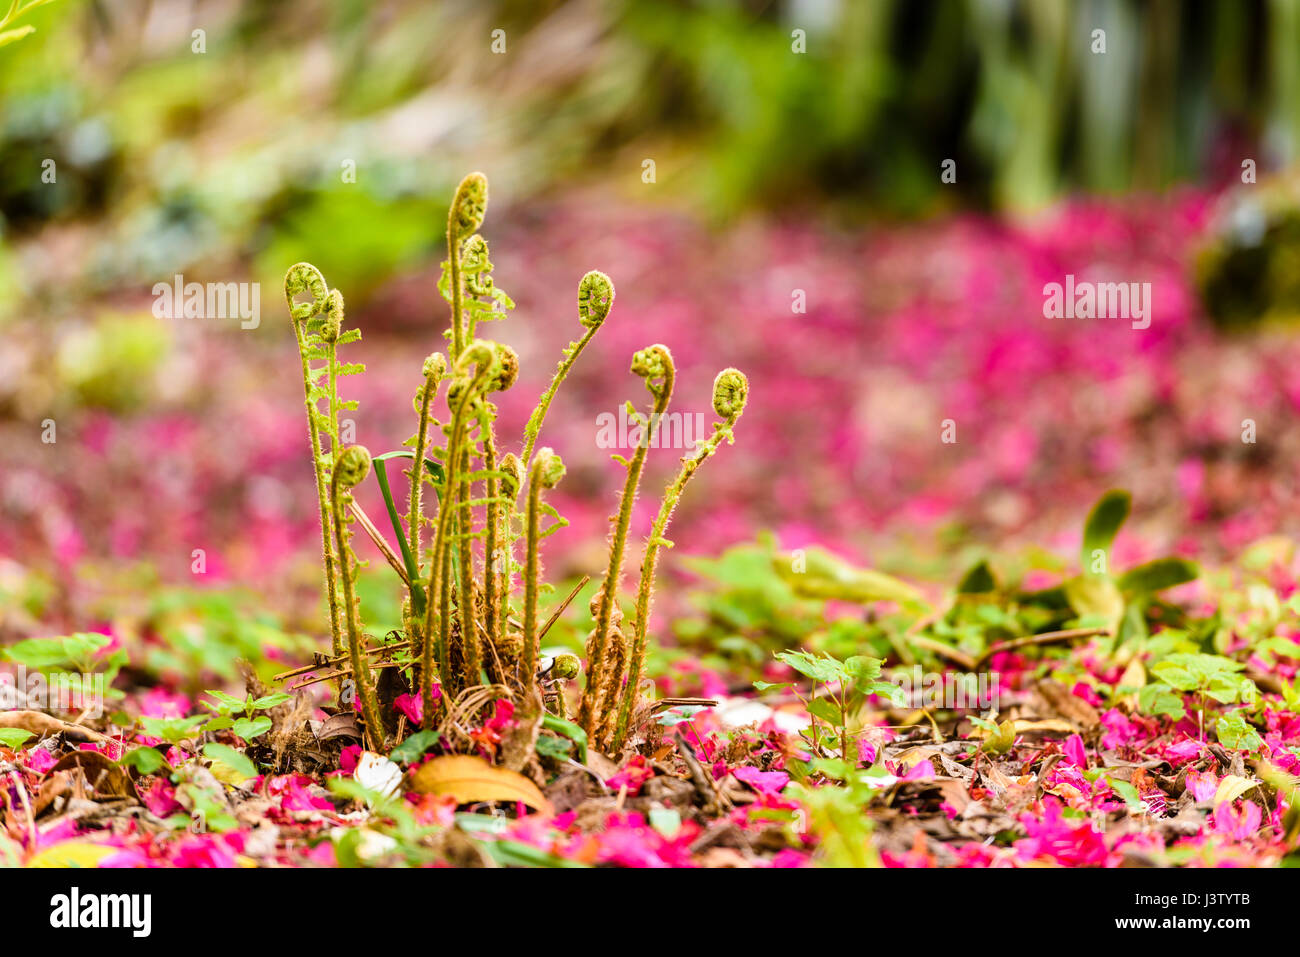 Pink rhododendron petals lie on the ground around ferns growing in a forest. - Stock Image